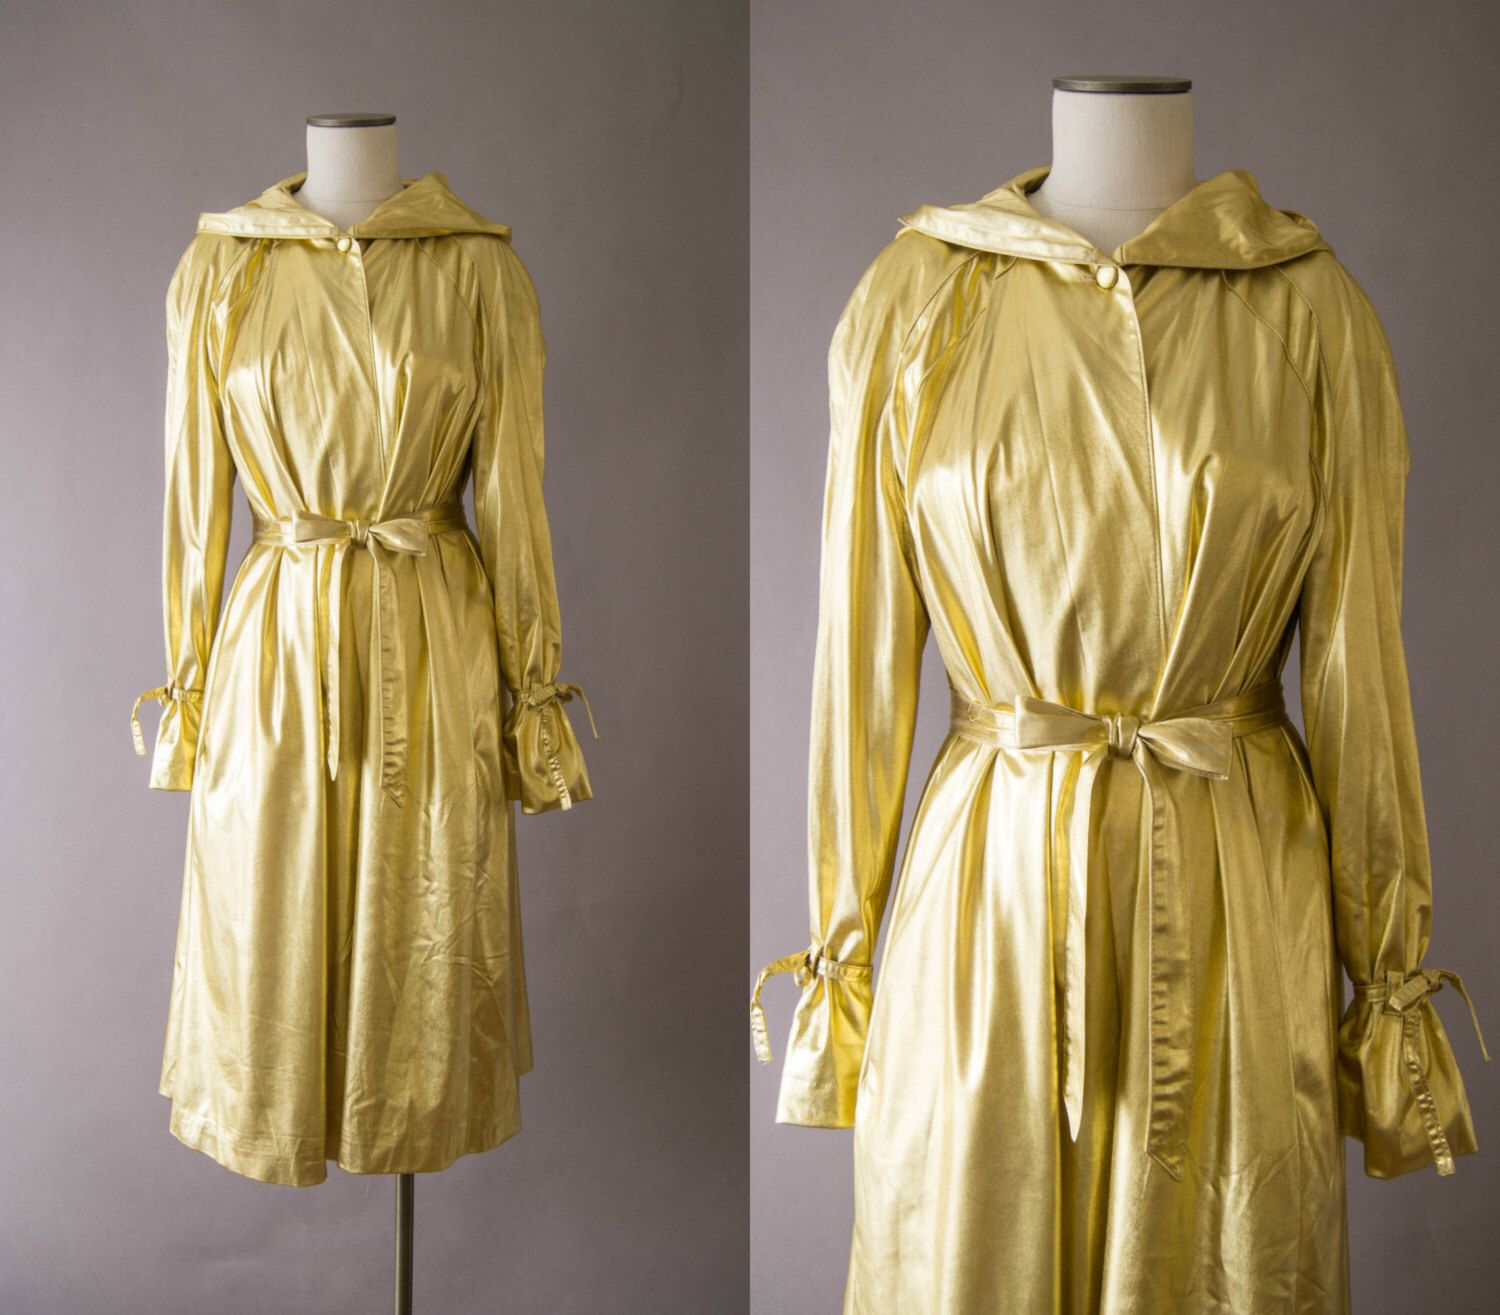 vintage 1970s jacket / 70s gold trench coat / one size / Golden Girl Coat by HungryHeartVintage on Etsy https://www.etsy.com/listing/499770239/vintage-1970s-jacket-70s-gold-trench